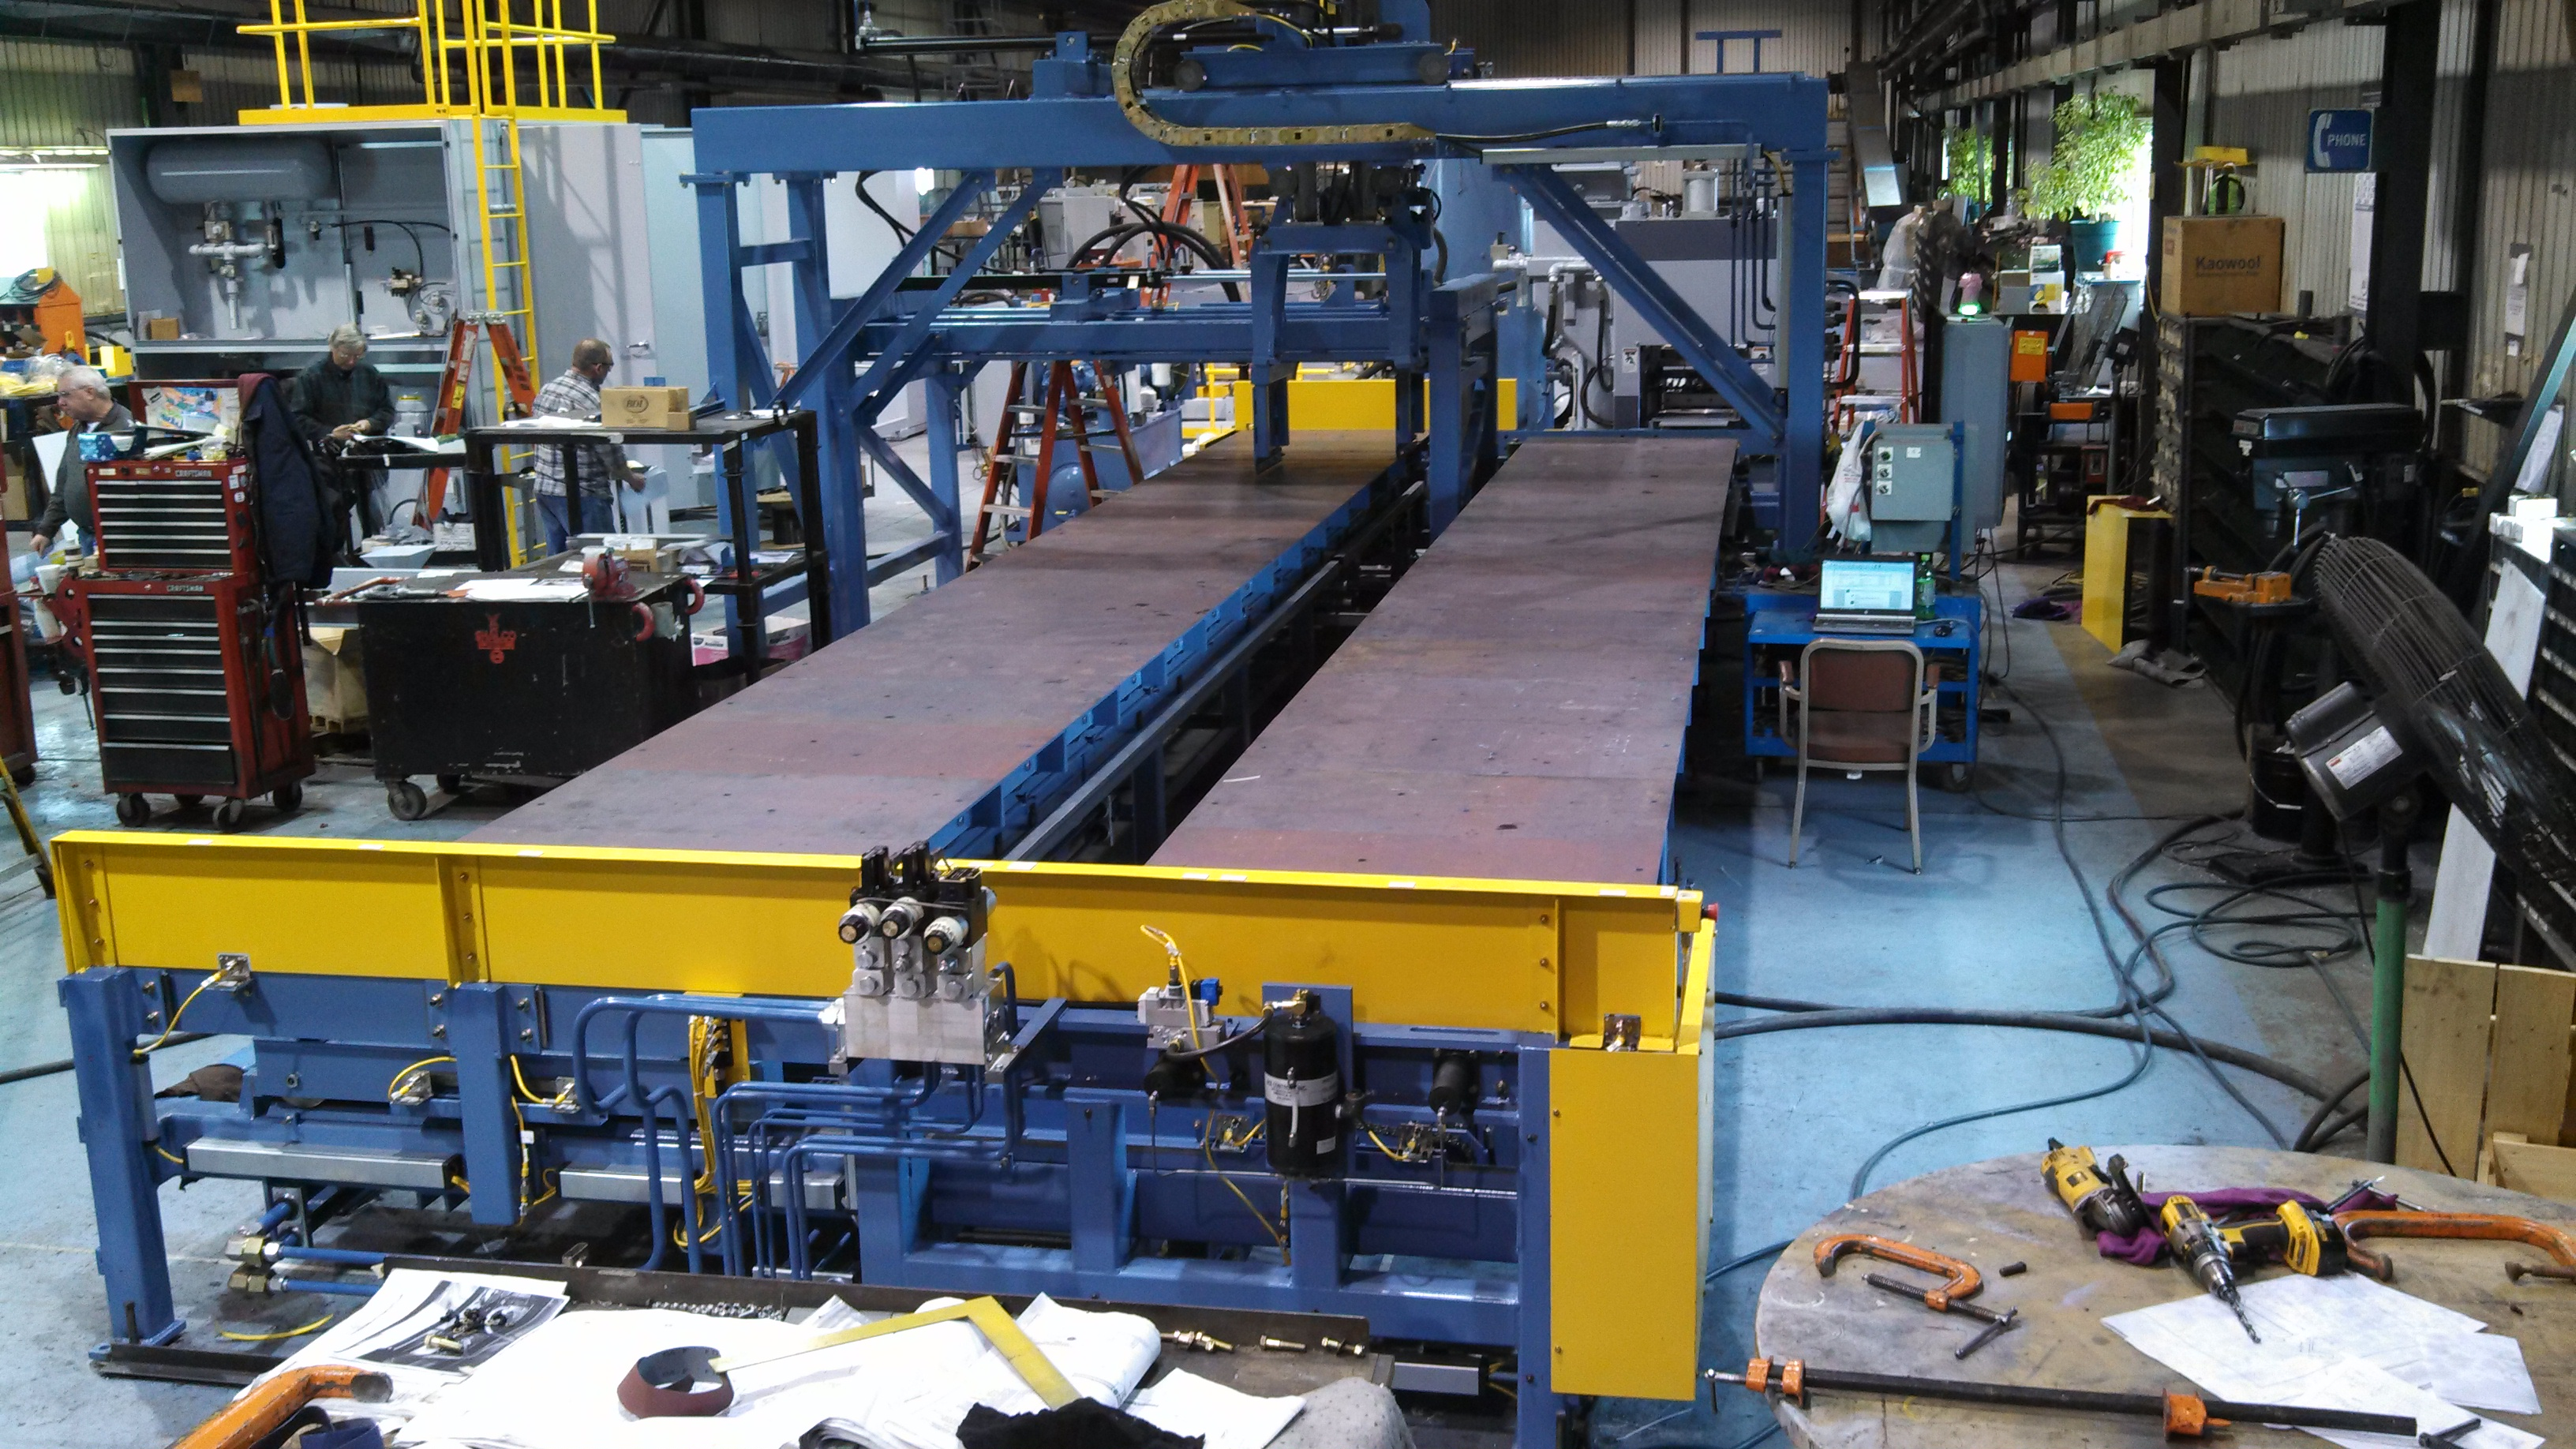 Mold Handling Systems by Sinto America, Foundry Manufacturer